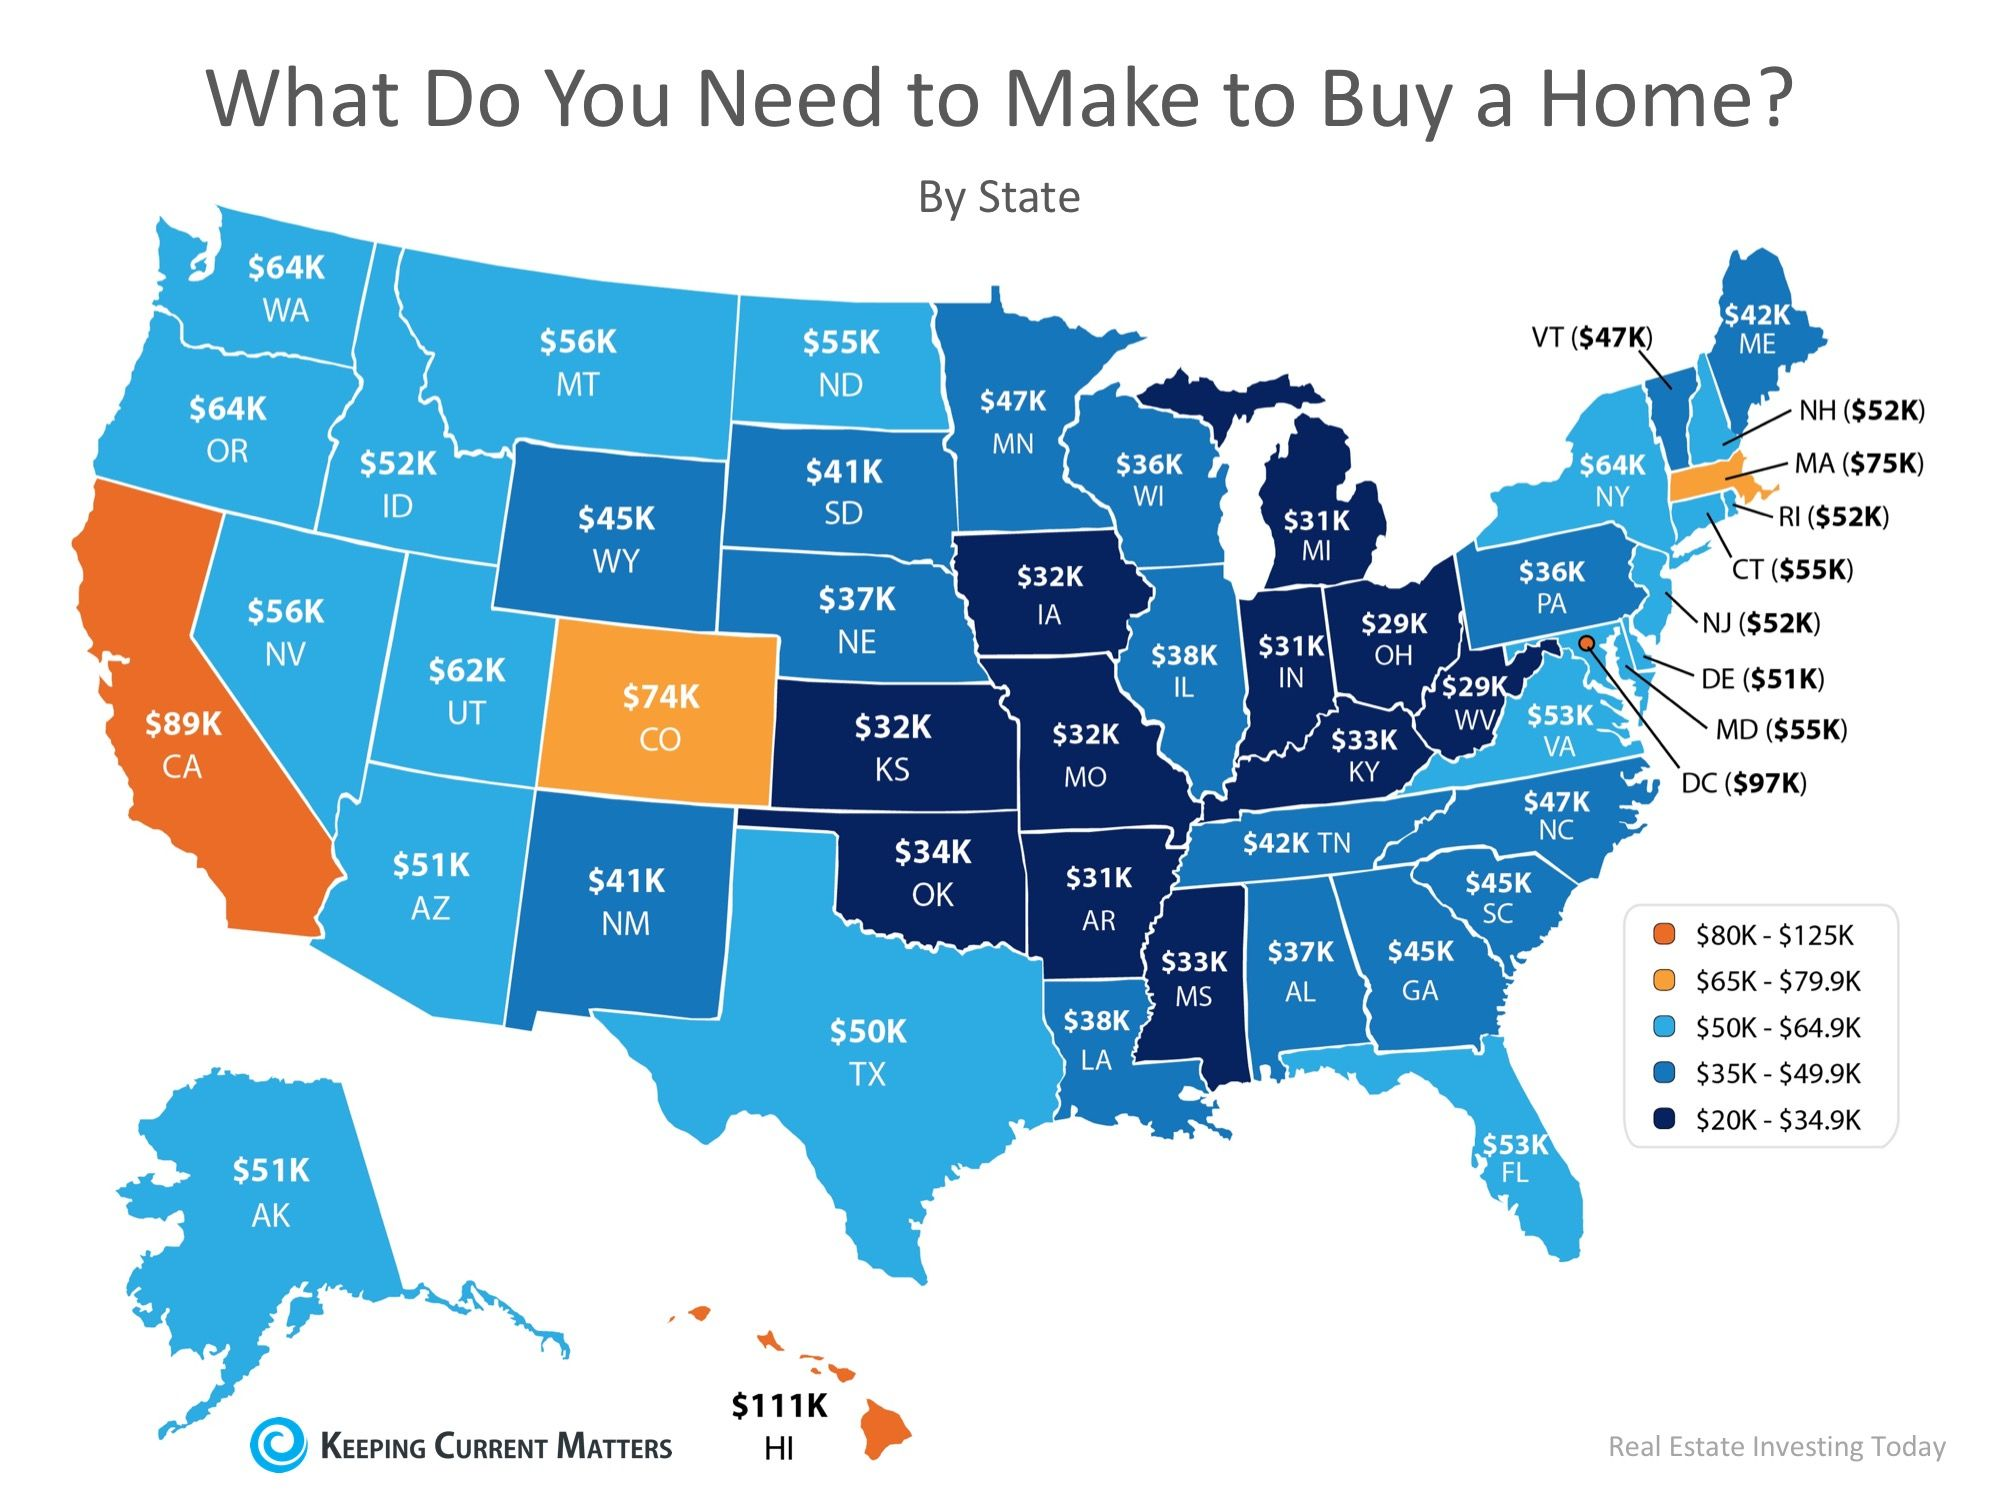 How Much Do You Need to Make to Buy a Home in Your State